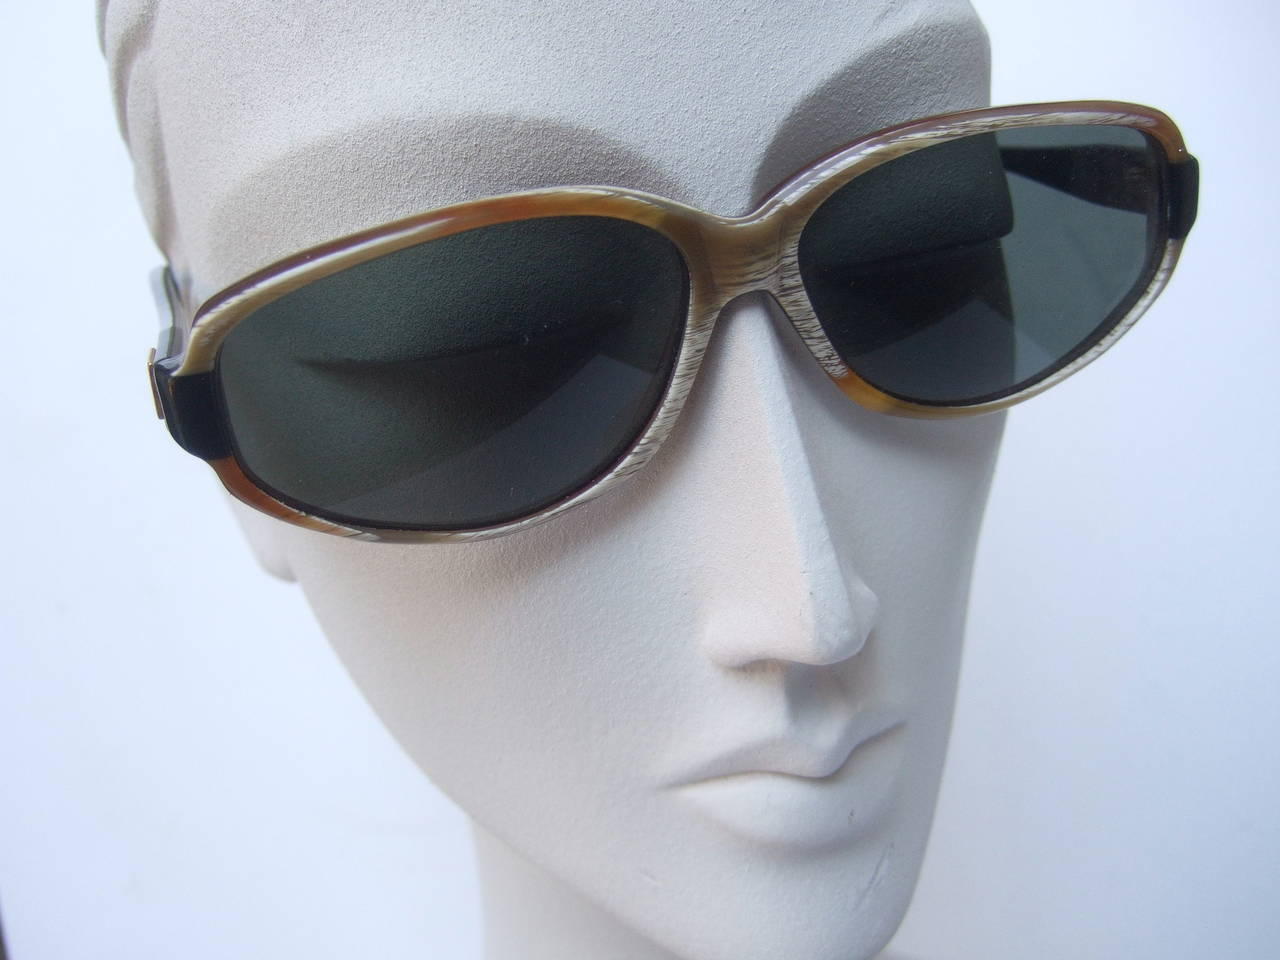 Jean Patou Paris Stylish sunglasses Made in France c 1990 The chic sunglasses are designed with amber lucite horn style frames with white streaks & gray tinted plastic lenses  The sides are designed with ebony lucite with gilt metal  plaques